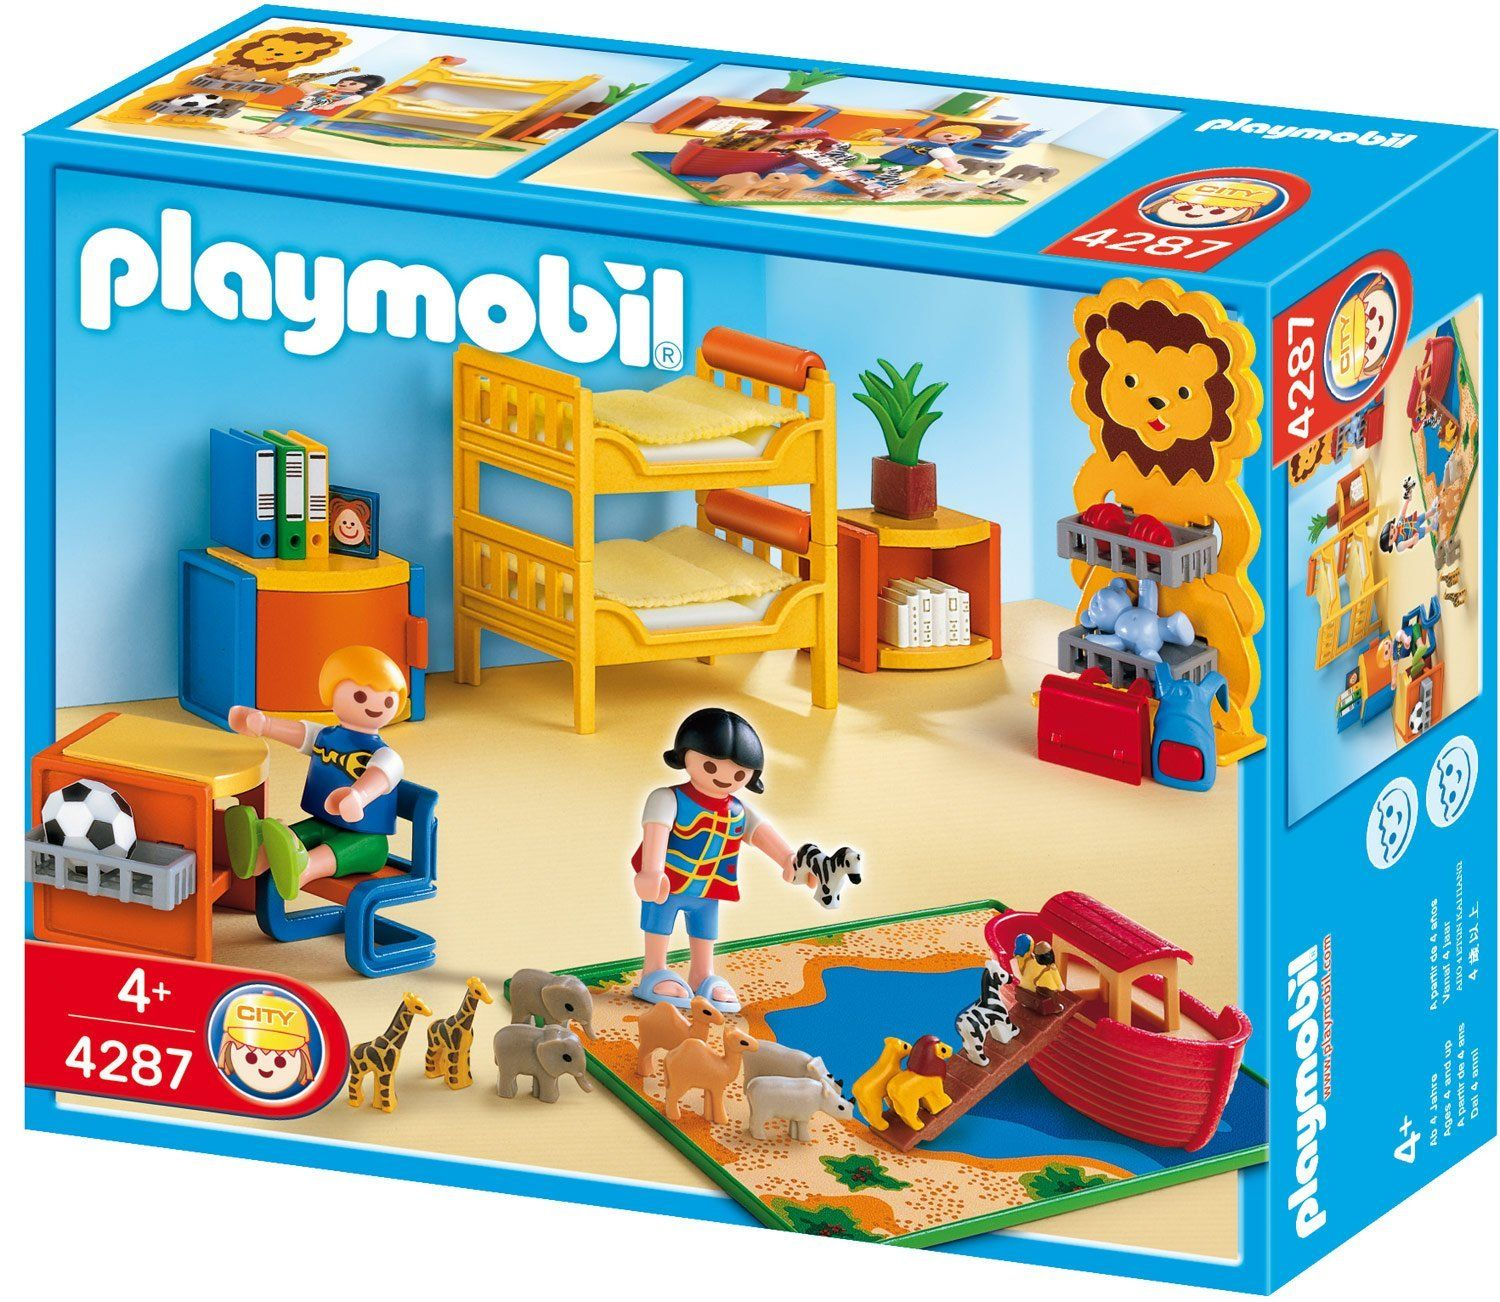 playmobil 4287 jeu de construction chambre des enfants jeux et jouets. Black Bedroom Furniture Sets. Home Design Ideas